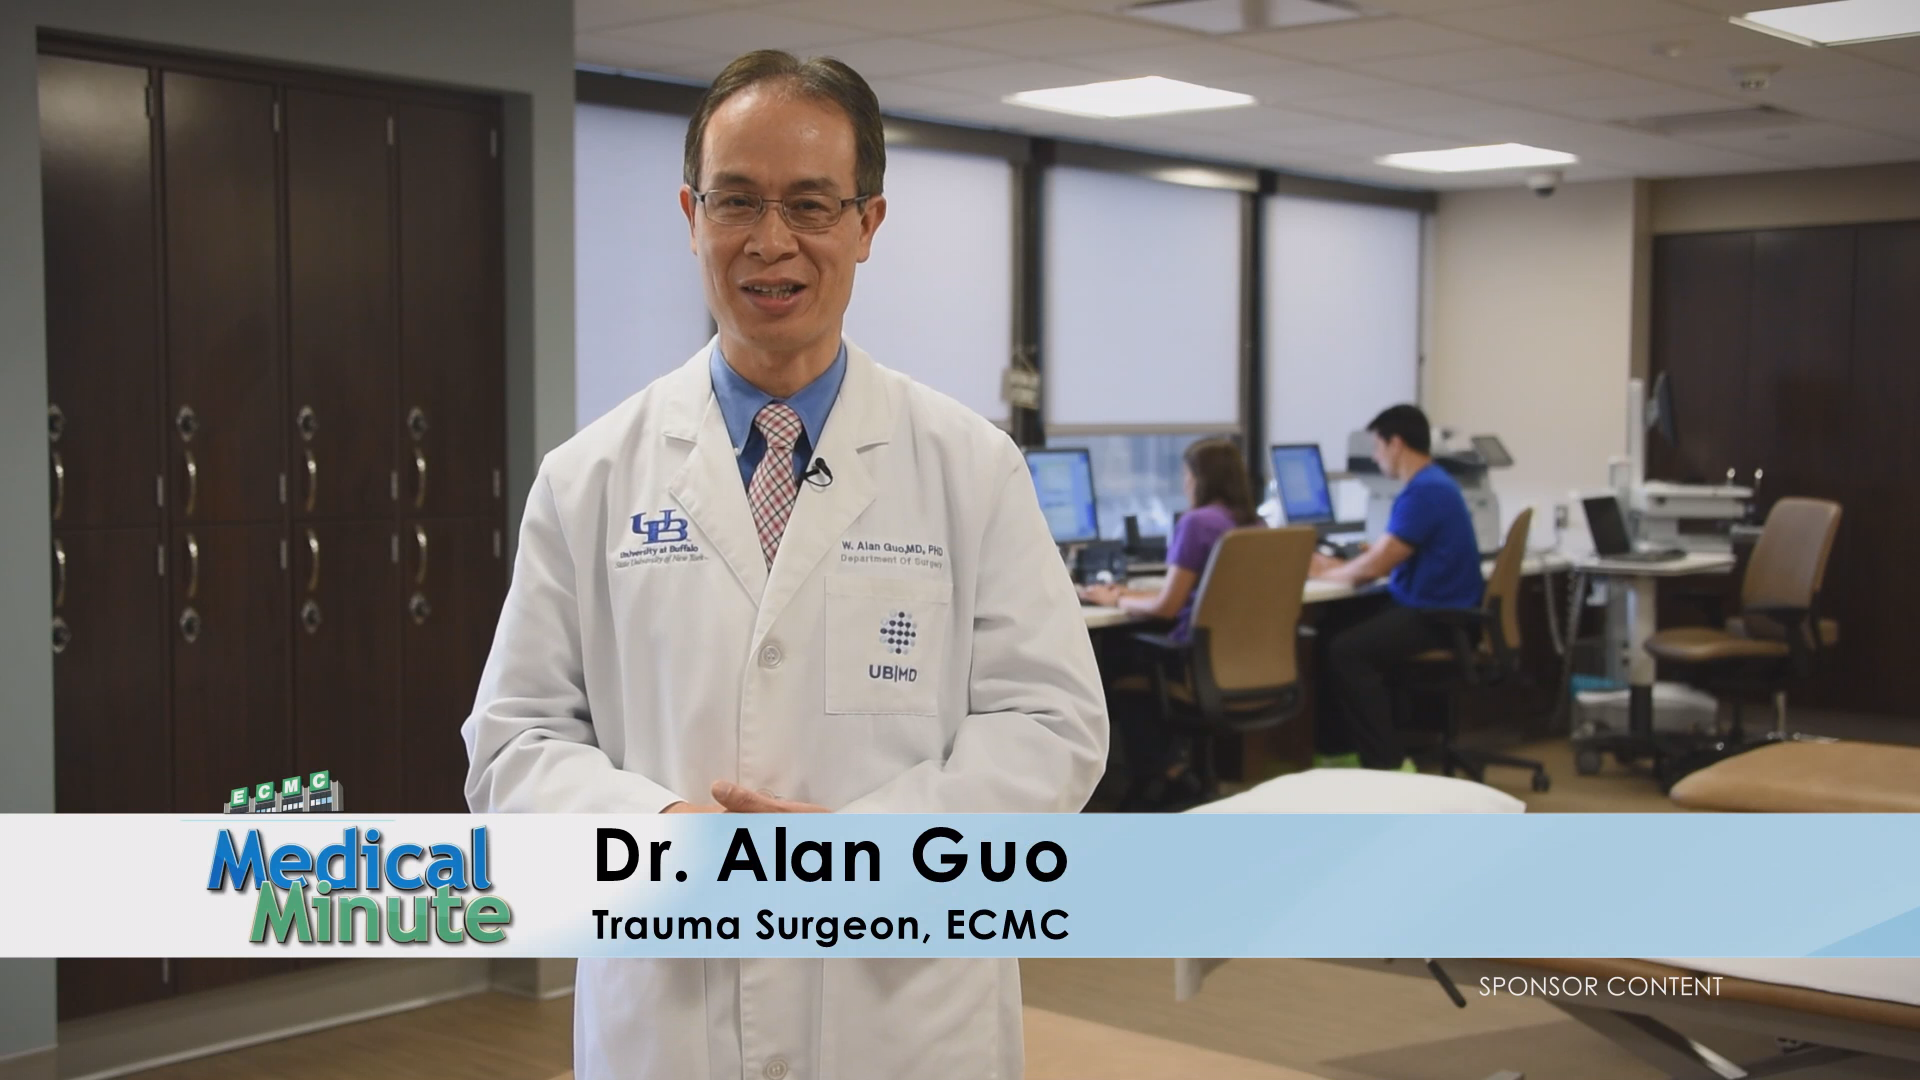 ECMCMedicalMinute Dr.AlanGuo SwimmingSafety 070119 STILL